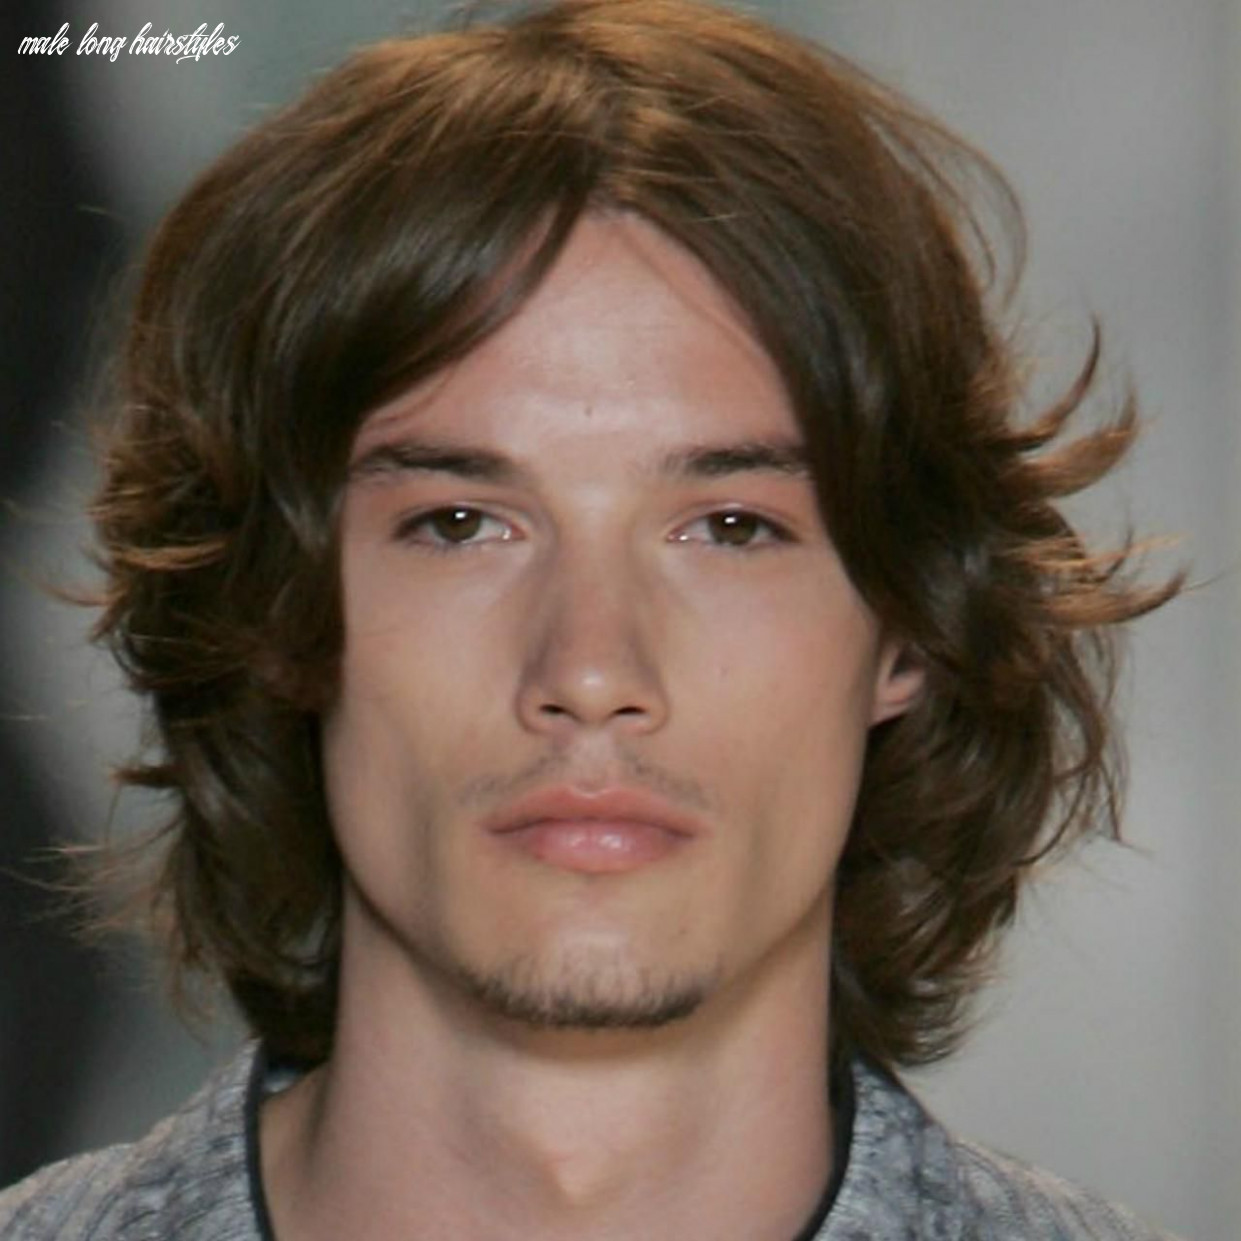 Long hairstyles for men picture gallery male long hairstyles